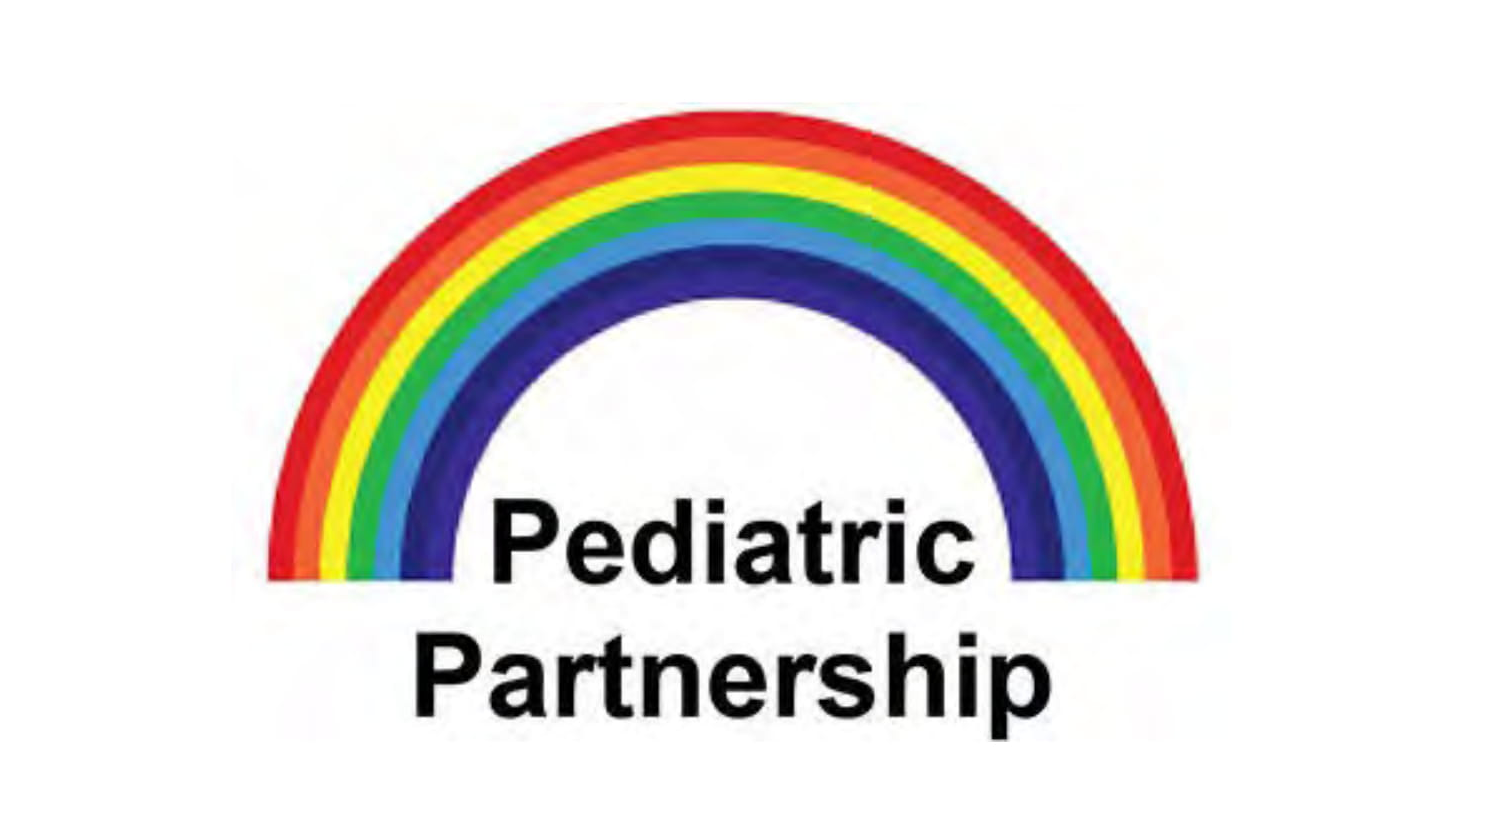 Pediatric Partnership